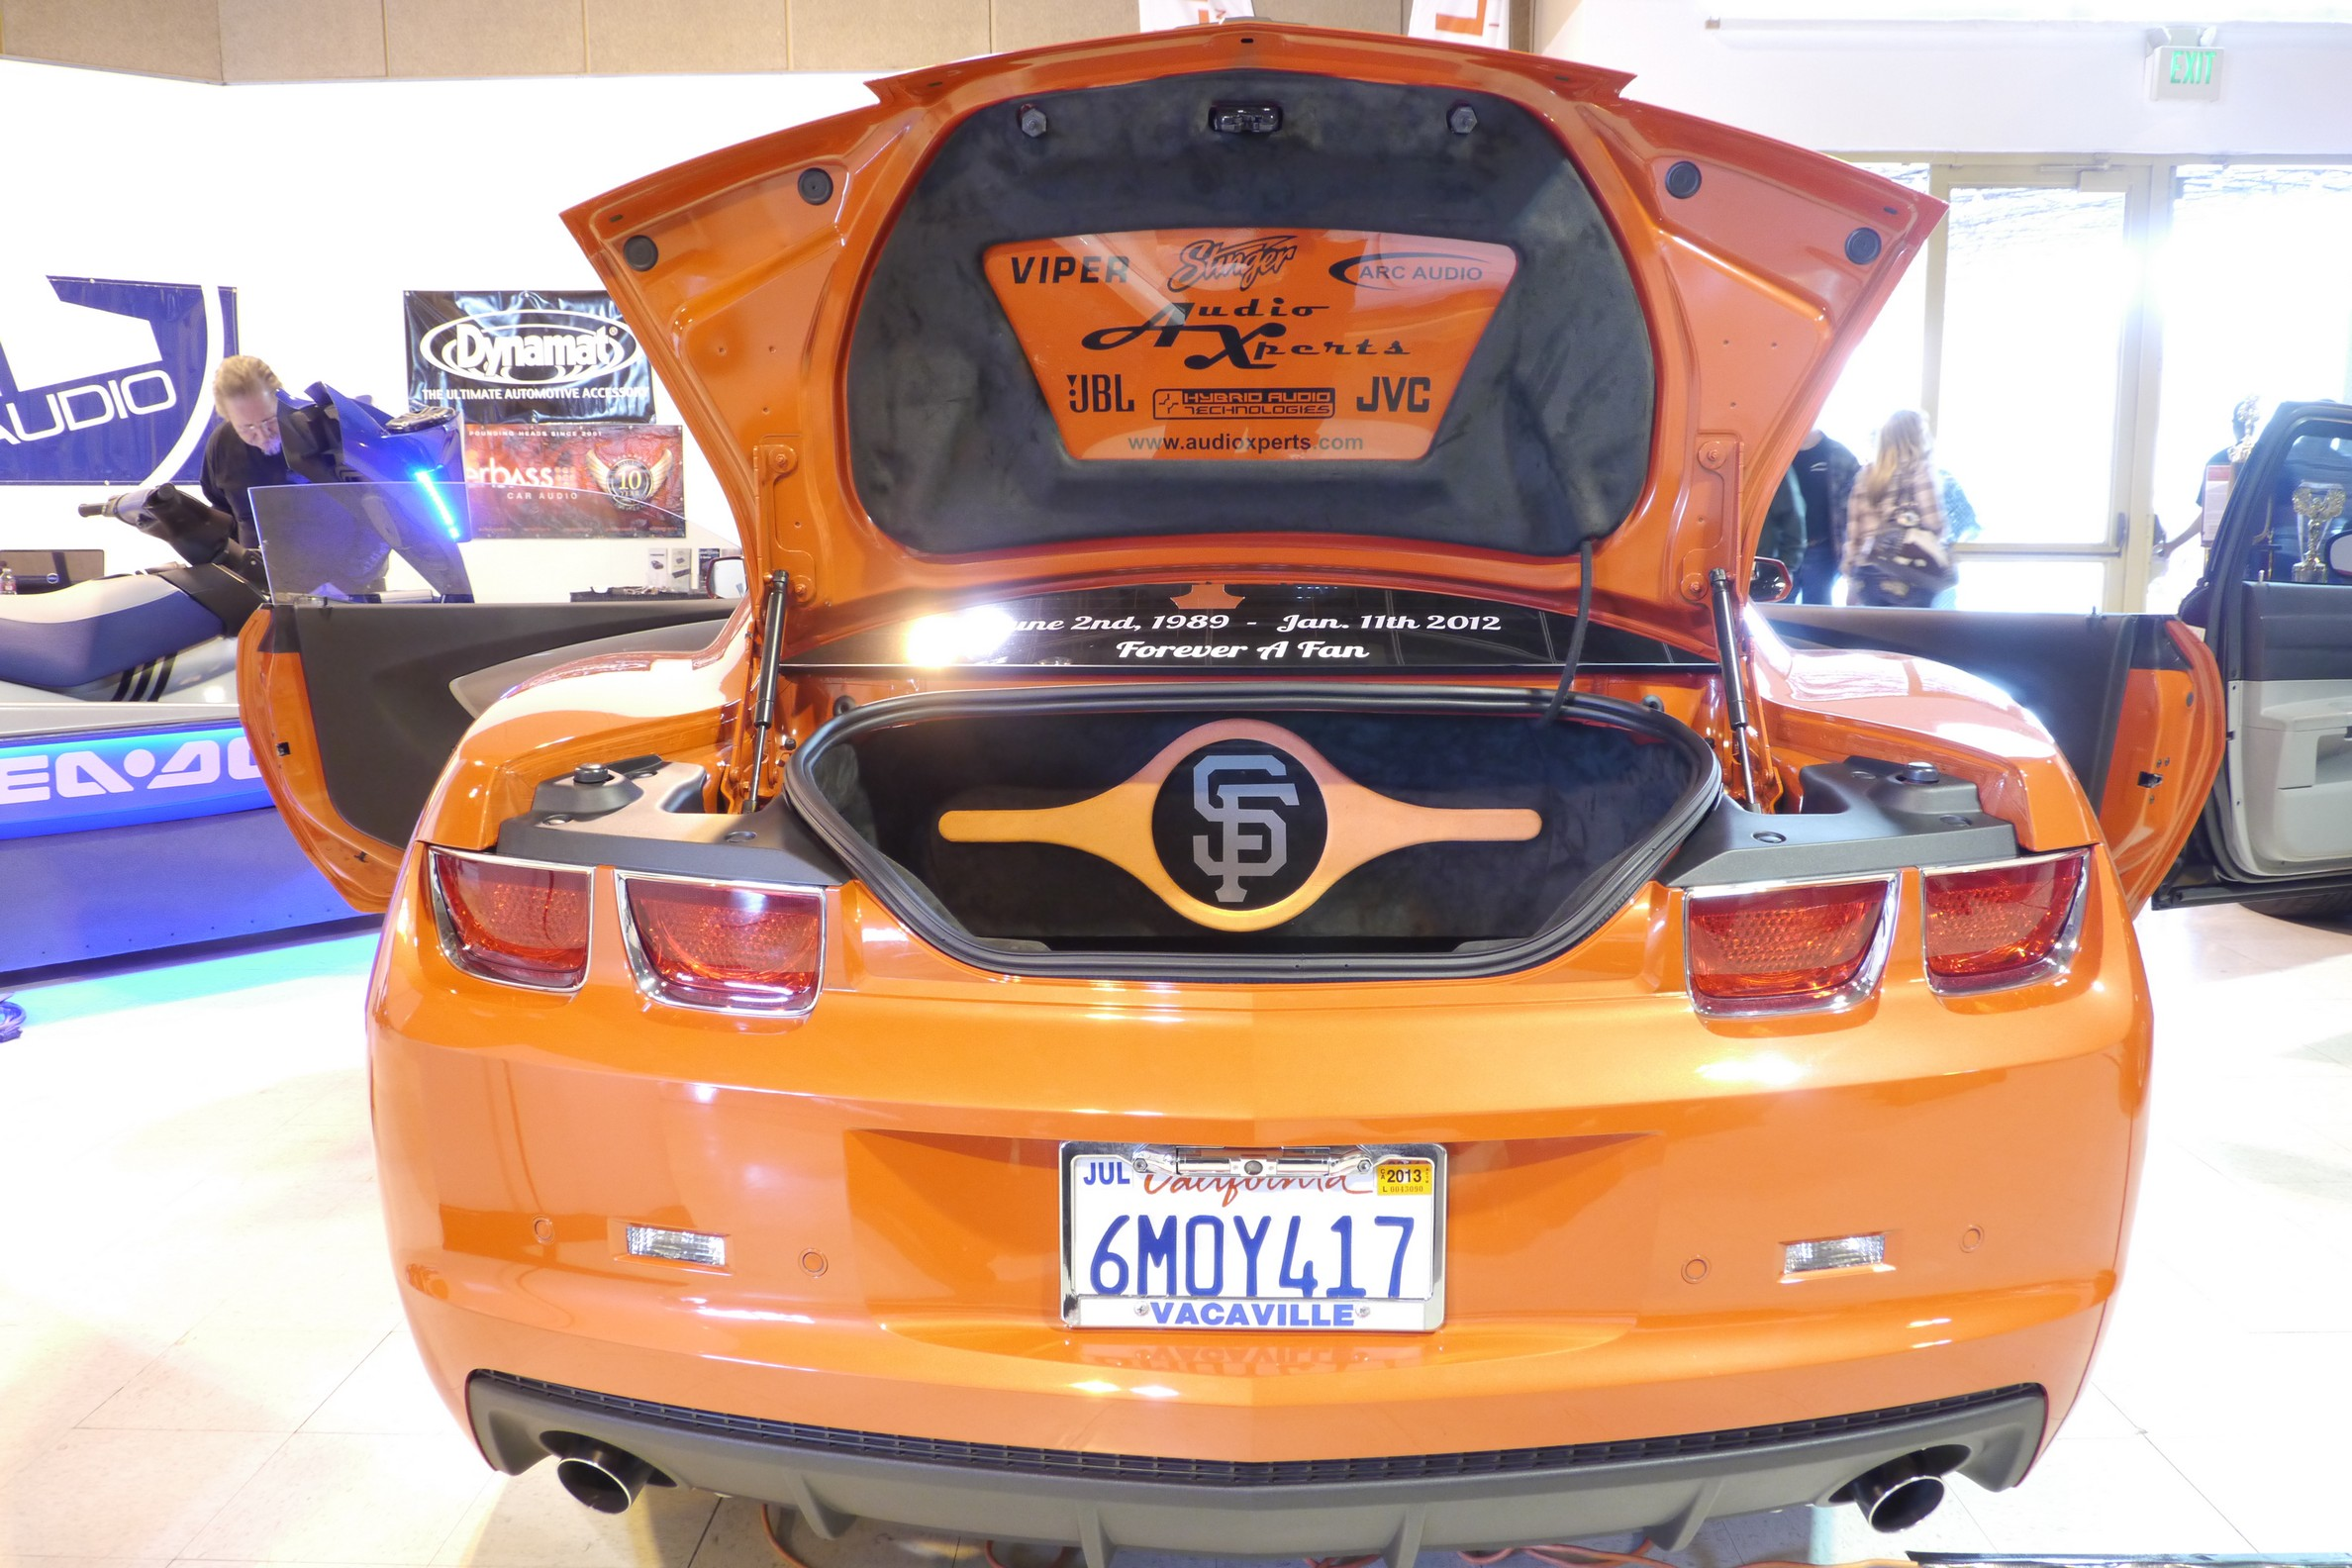 United Car Audio Finals Helps Cancer Research